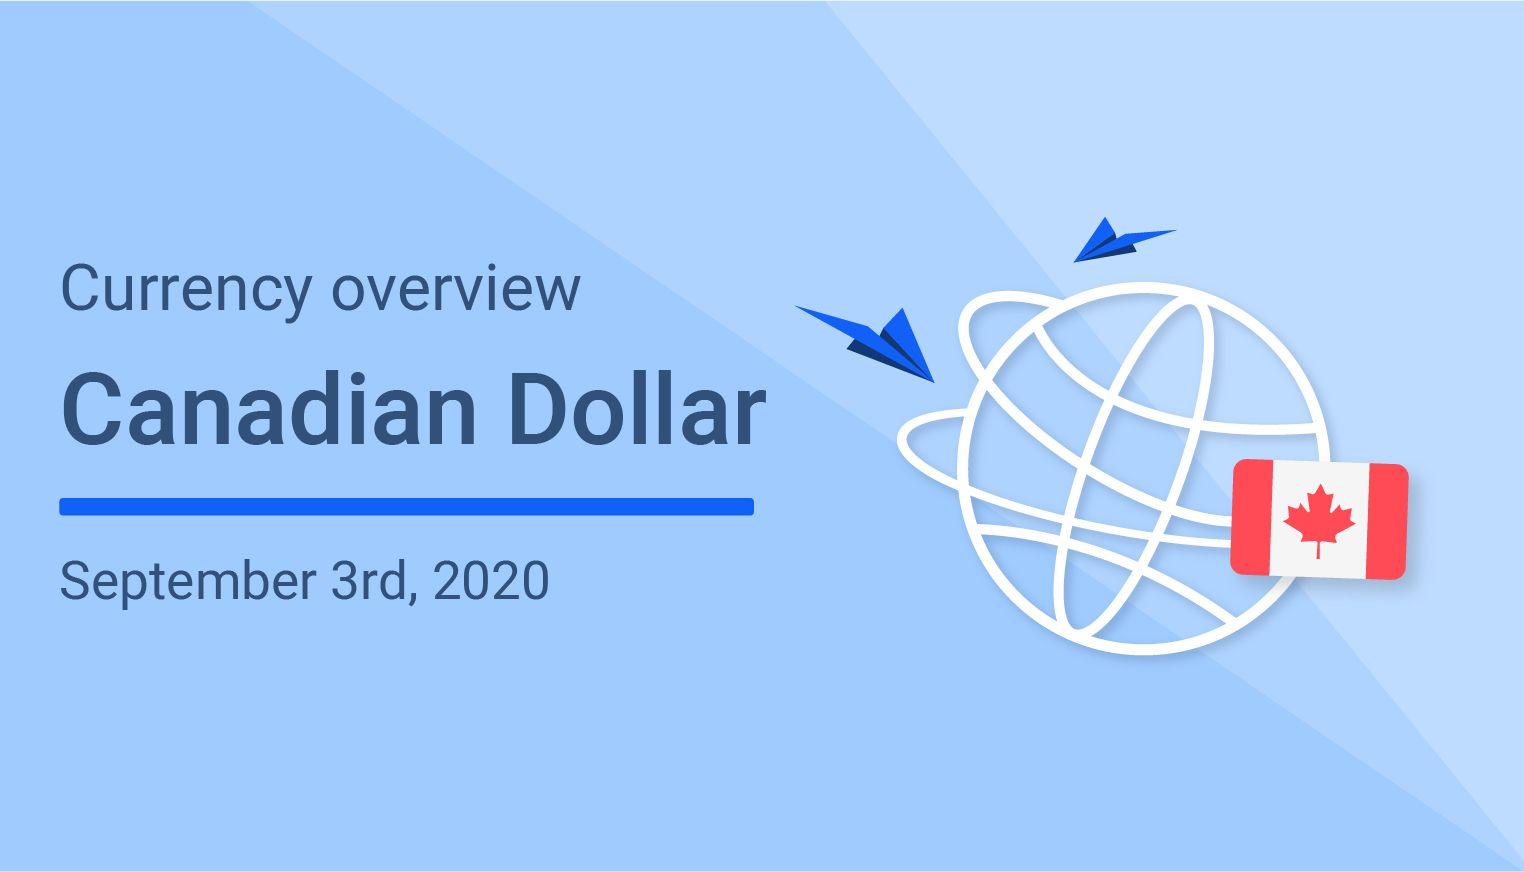 Canadian dollar (CAD) trending lower against most major currencies